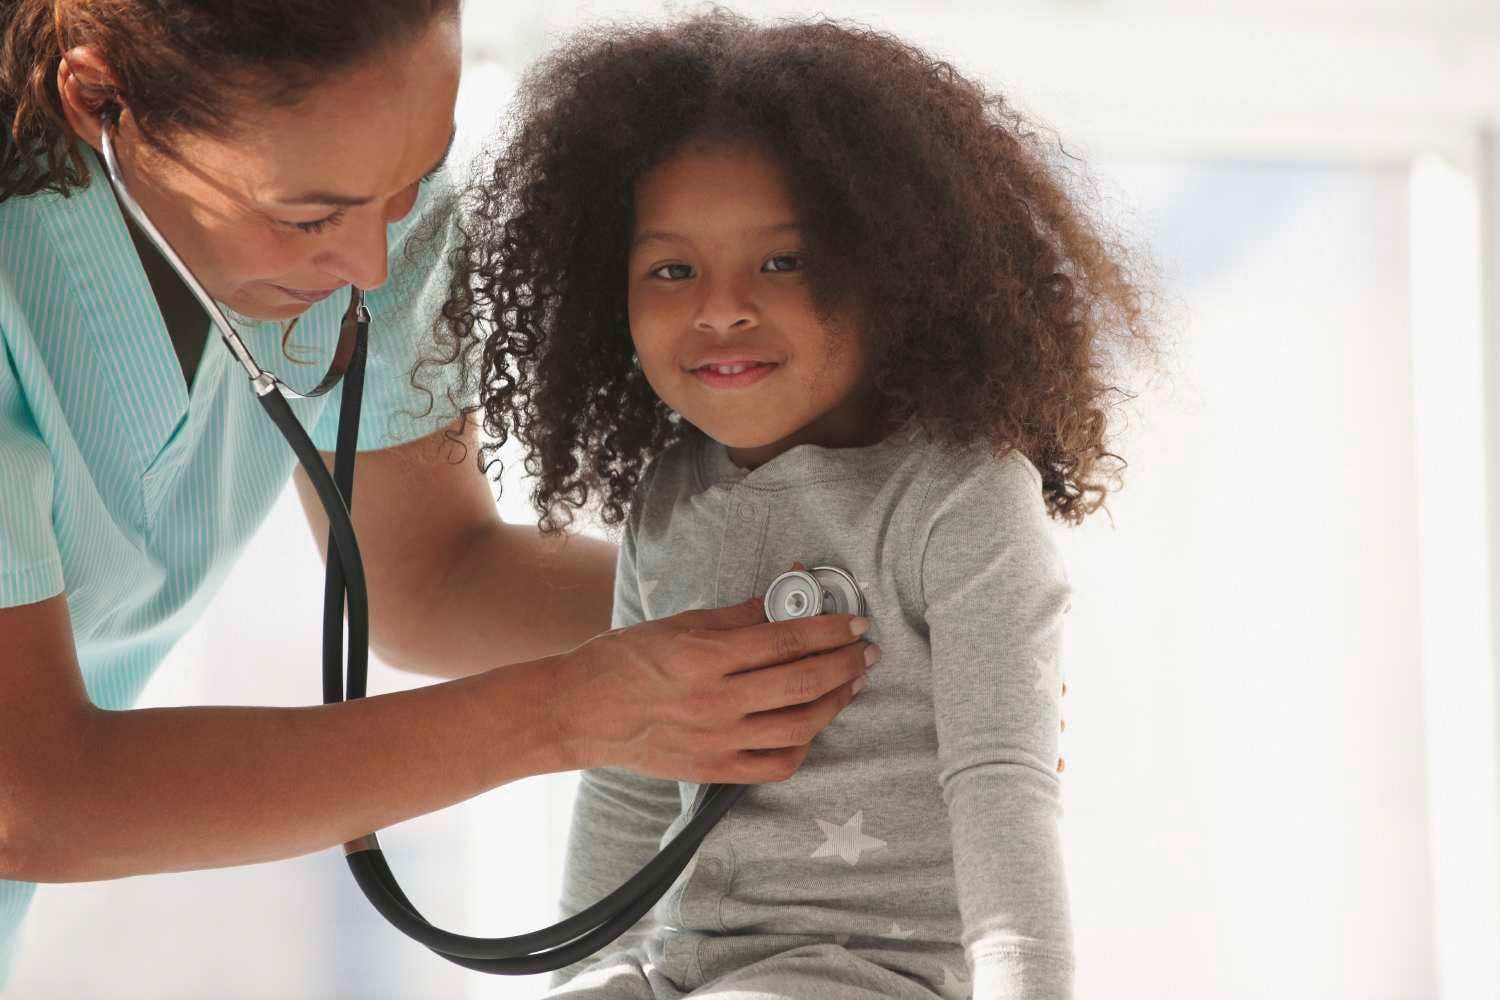 Female Doctor examining a child with stethoscope